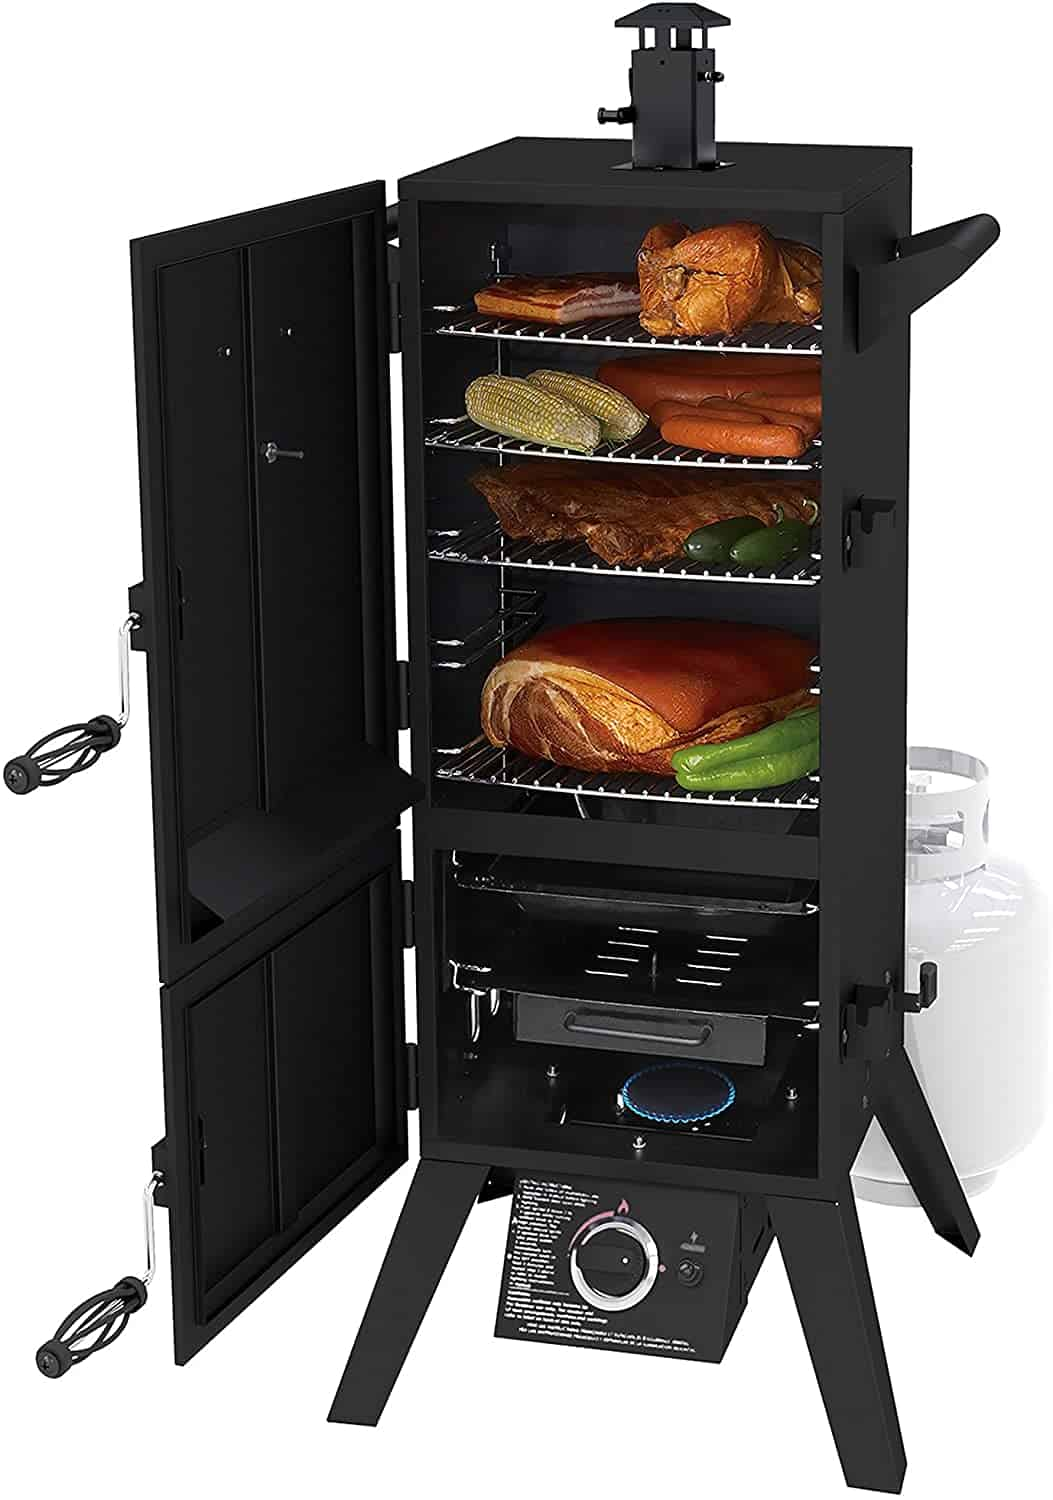 Best propane smoker overall for everyday use- Dyna-Glo DGY784BDP 36 Vertical LP